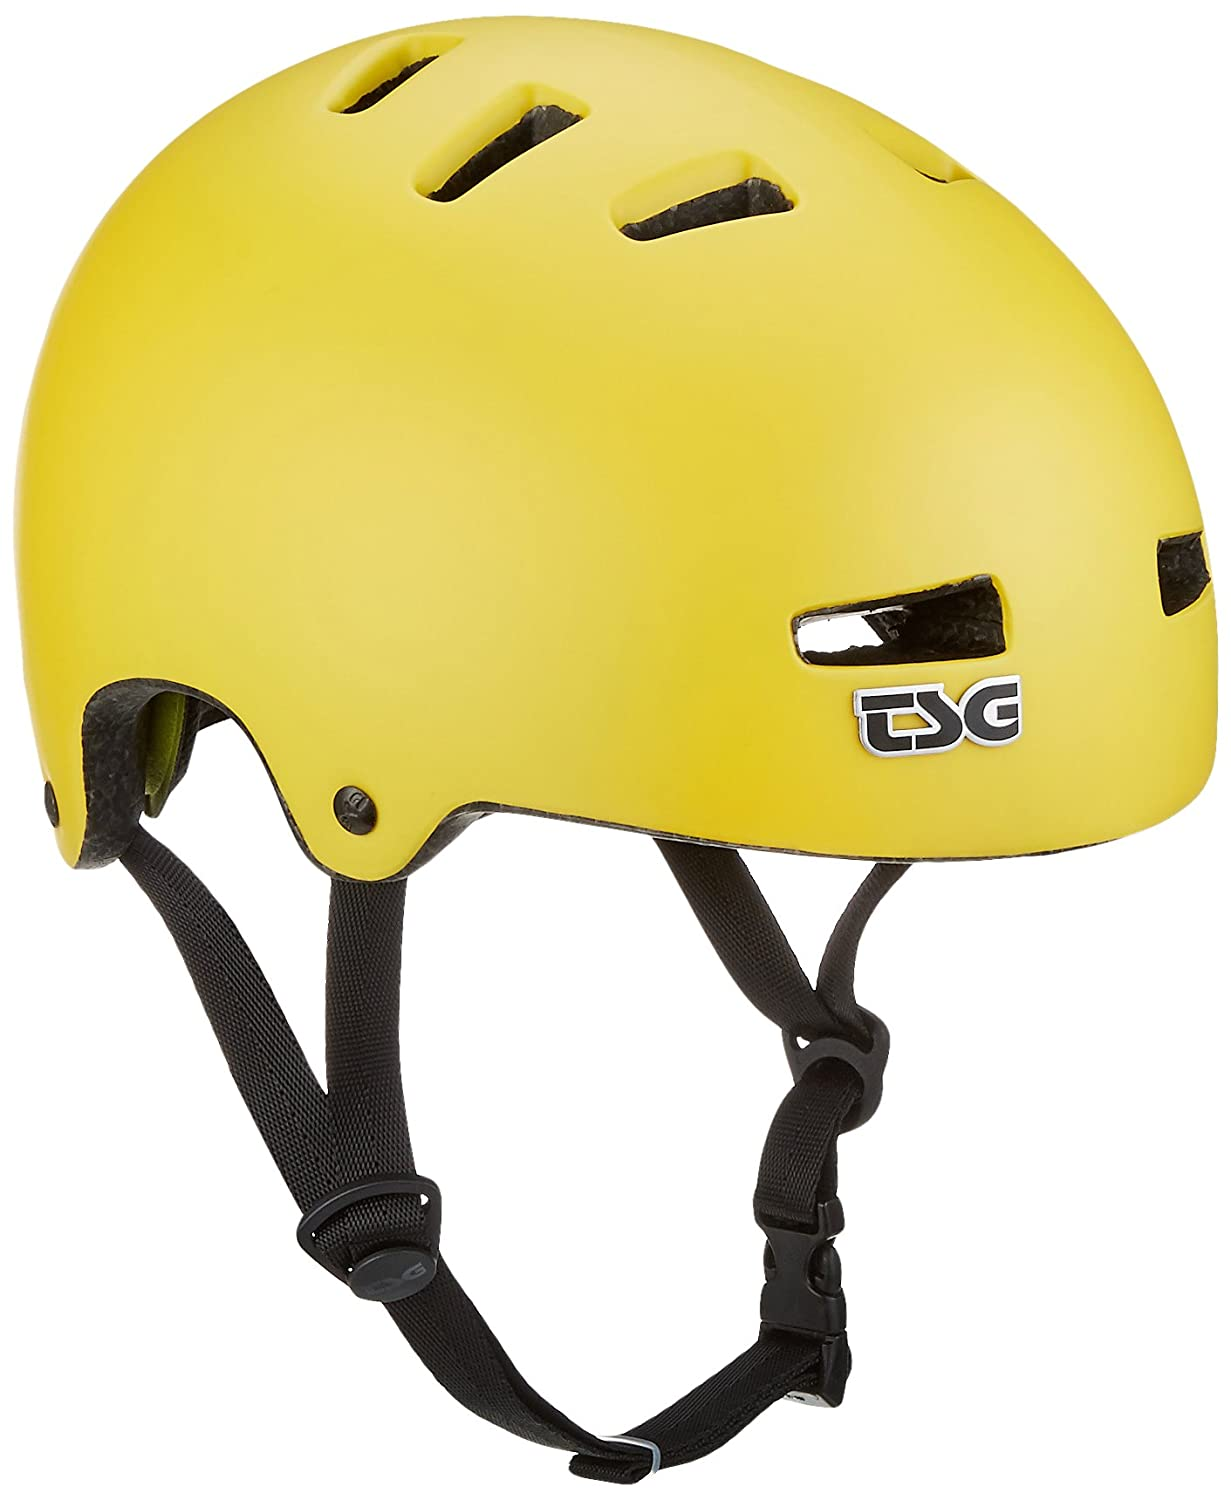 TSG Superlight Solid Color Halbschalenhelm TSGA5|#TSG 750011